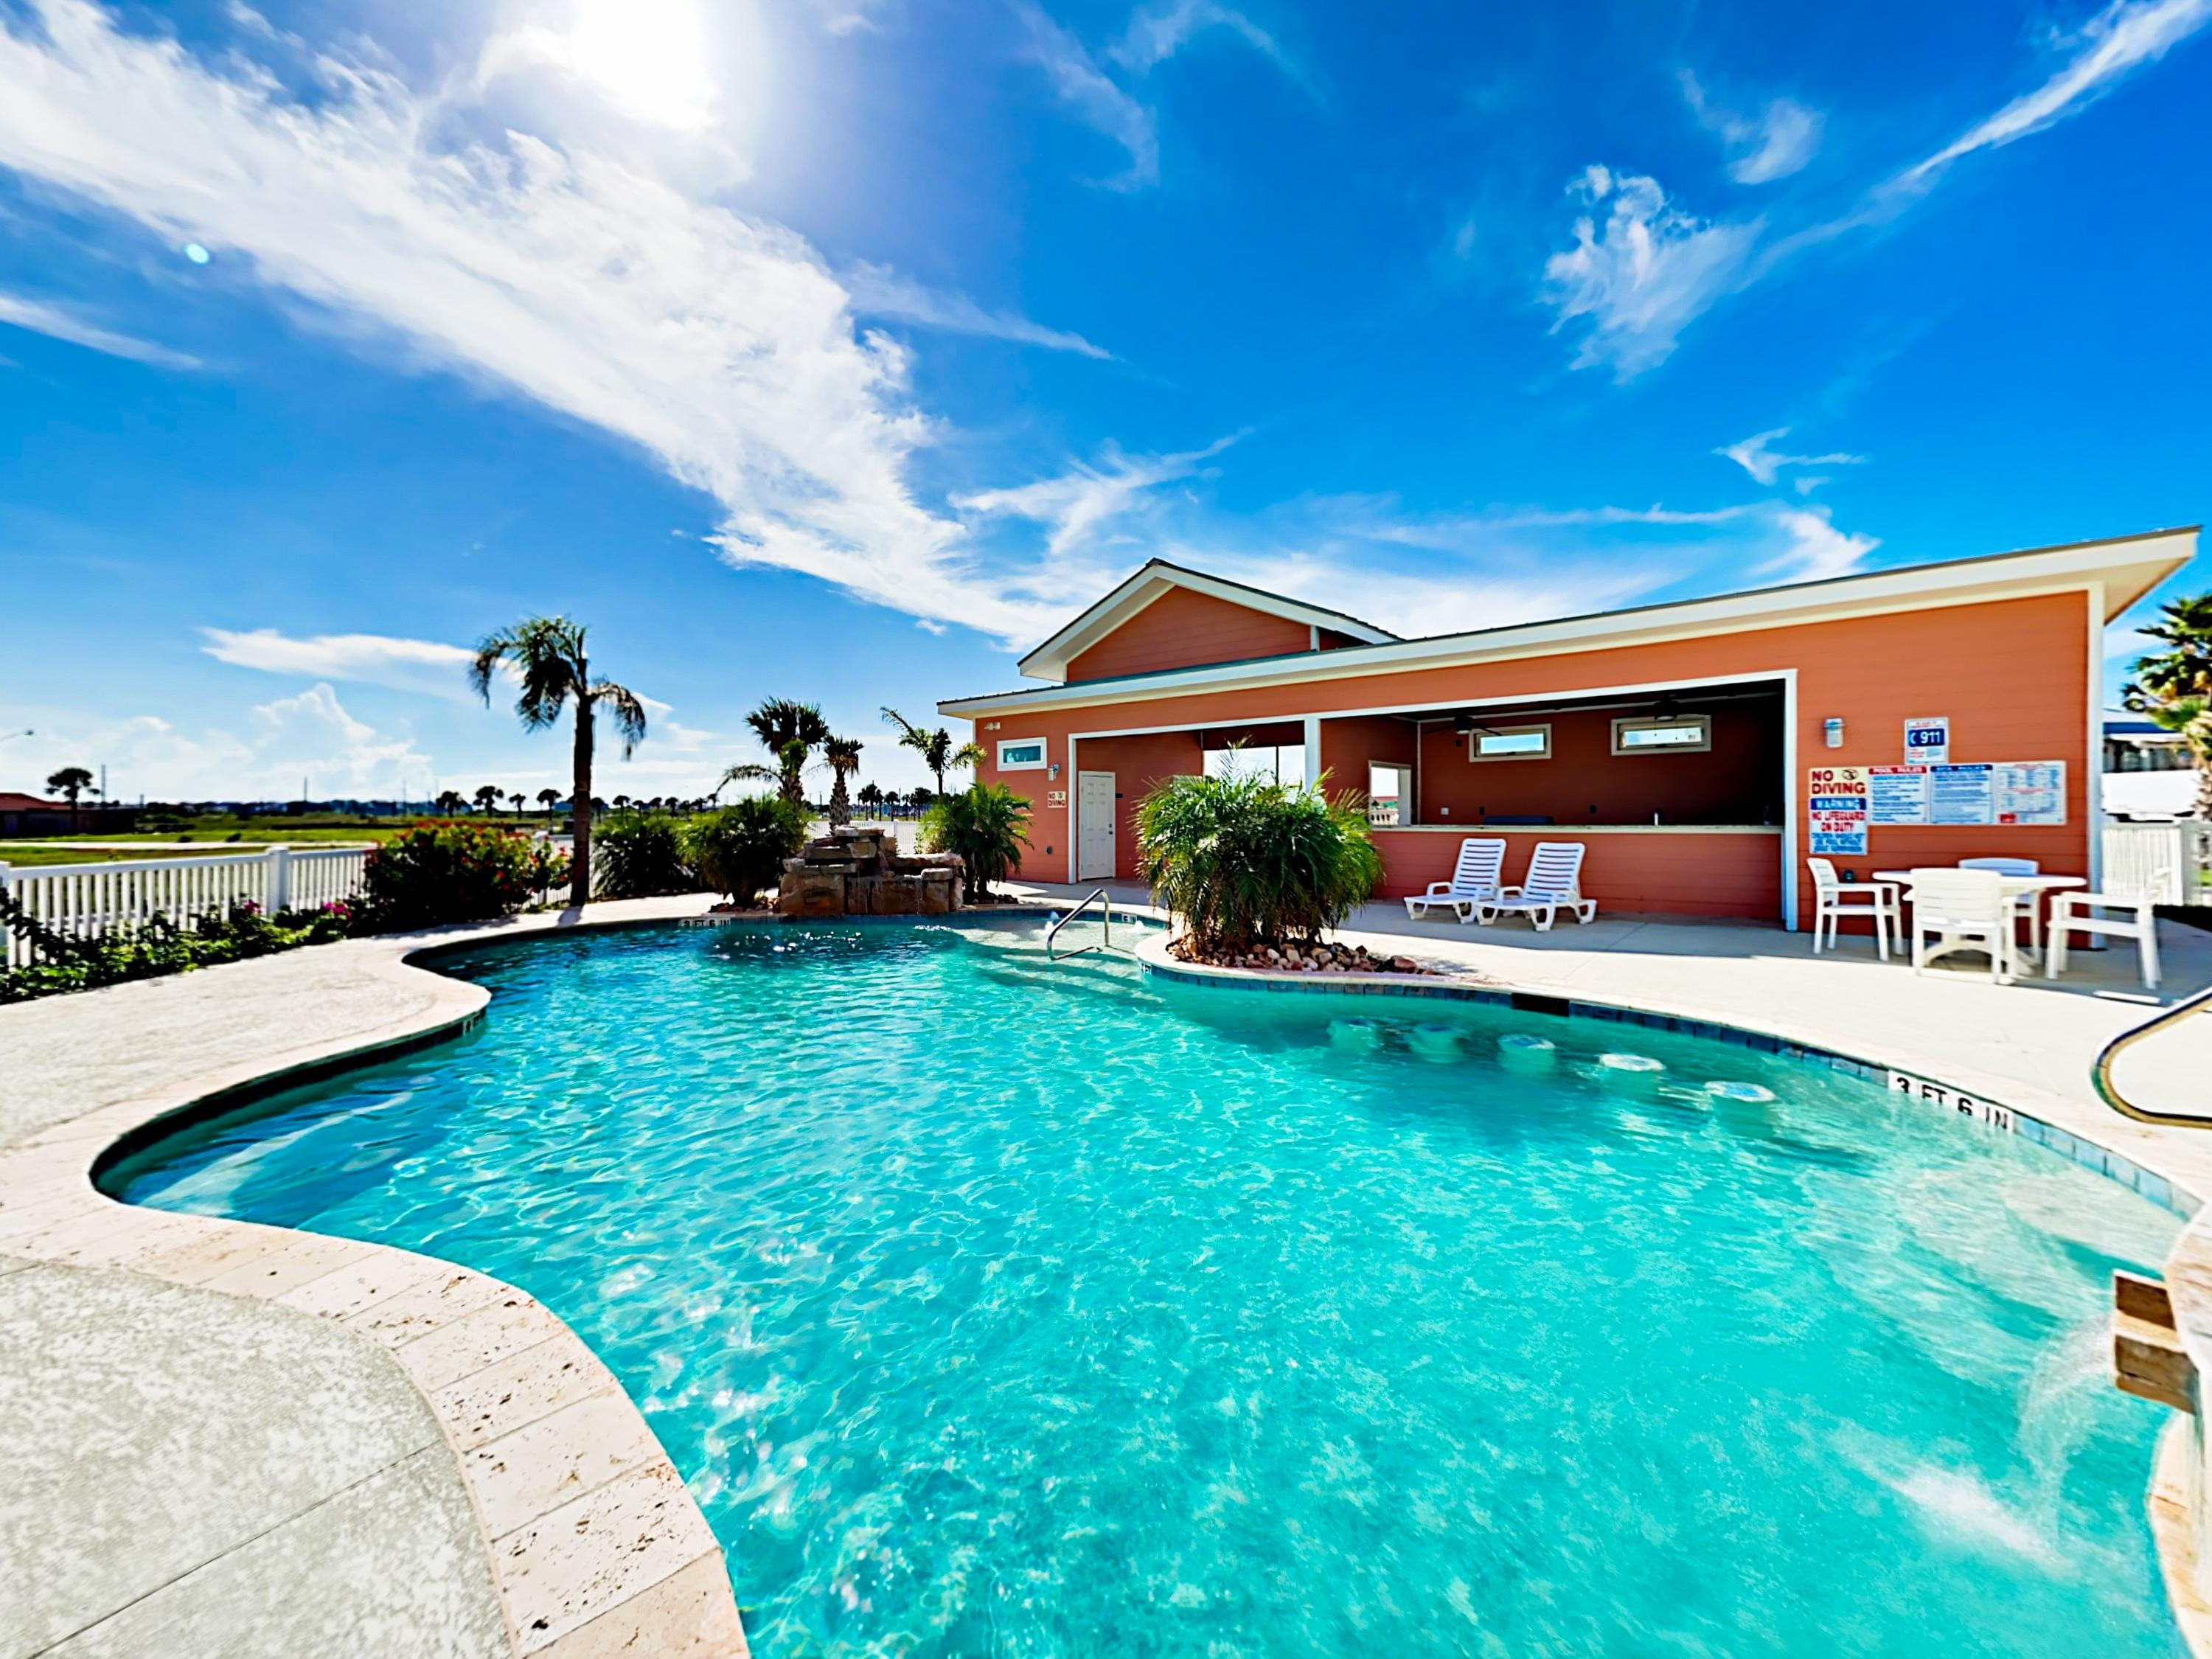 Cool off in the sparkling shared pool. This property is professionally managed by TurnKey Vacation Rentals.